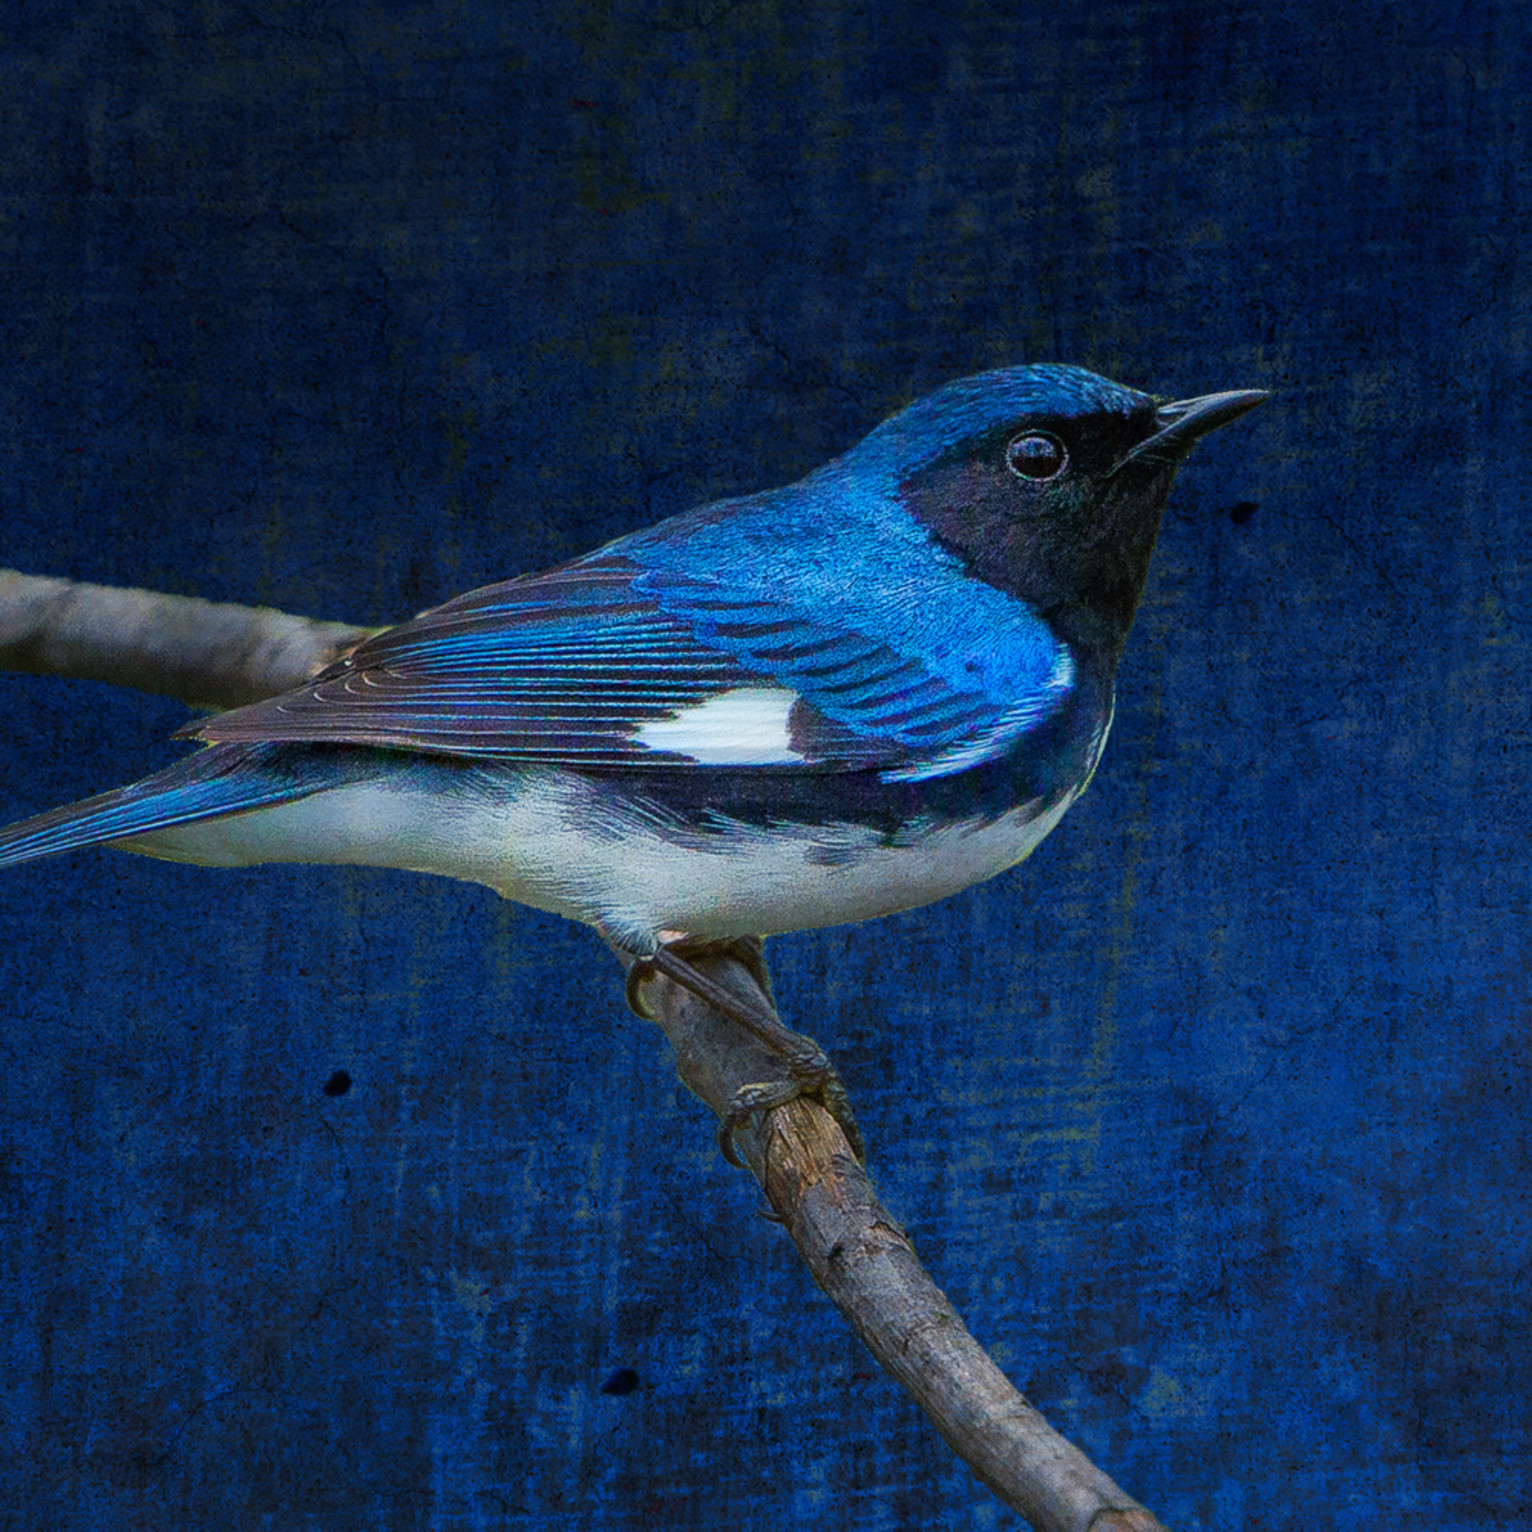 Black throated blue warbler 20150510 161258 mc 200 1 2 2 zdhnhw